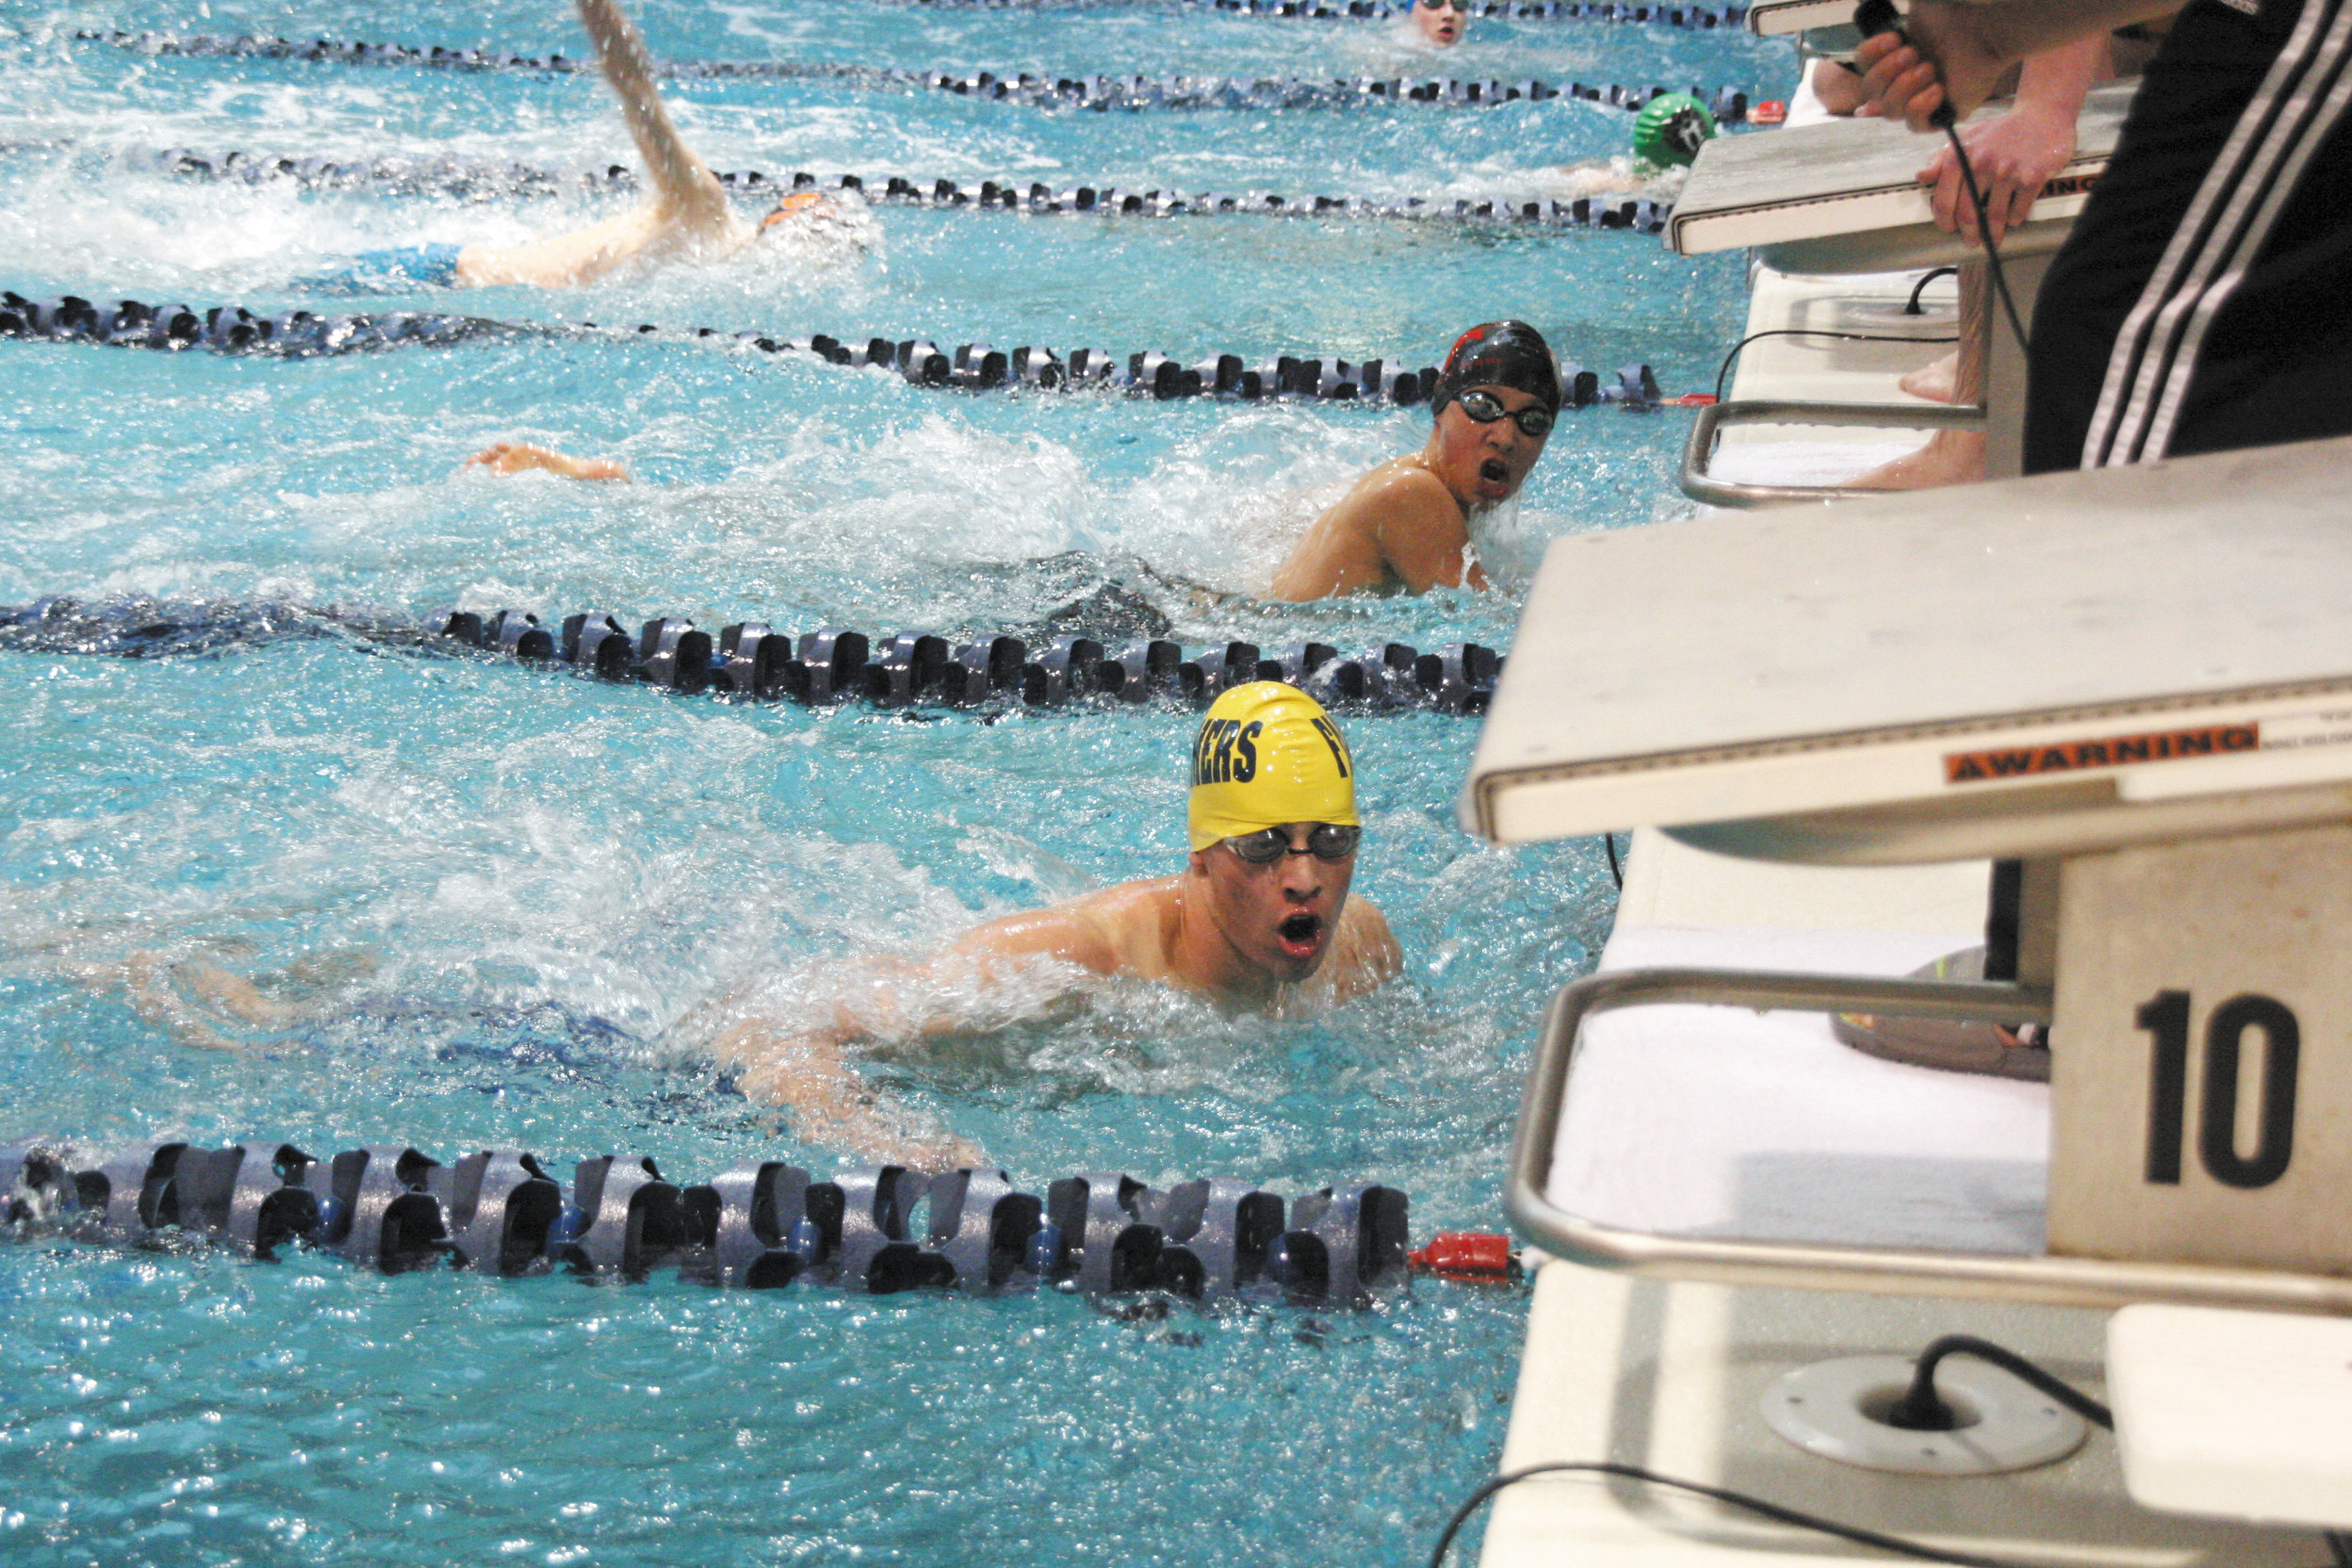 Wheat Ridge's Max Sweeney looks for his time and how his team finished their 200 Medley Relay during Saturday's Dick Rush Memorial Swim-Dive Invitational.